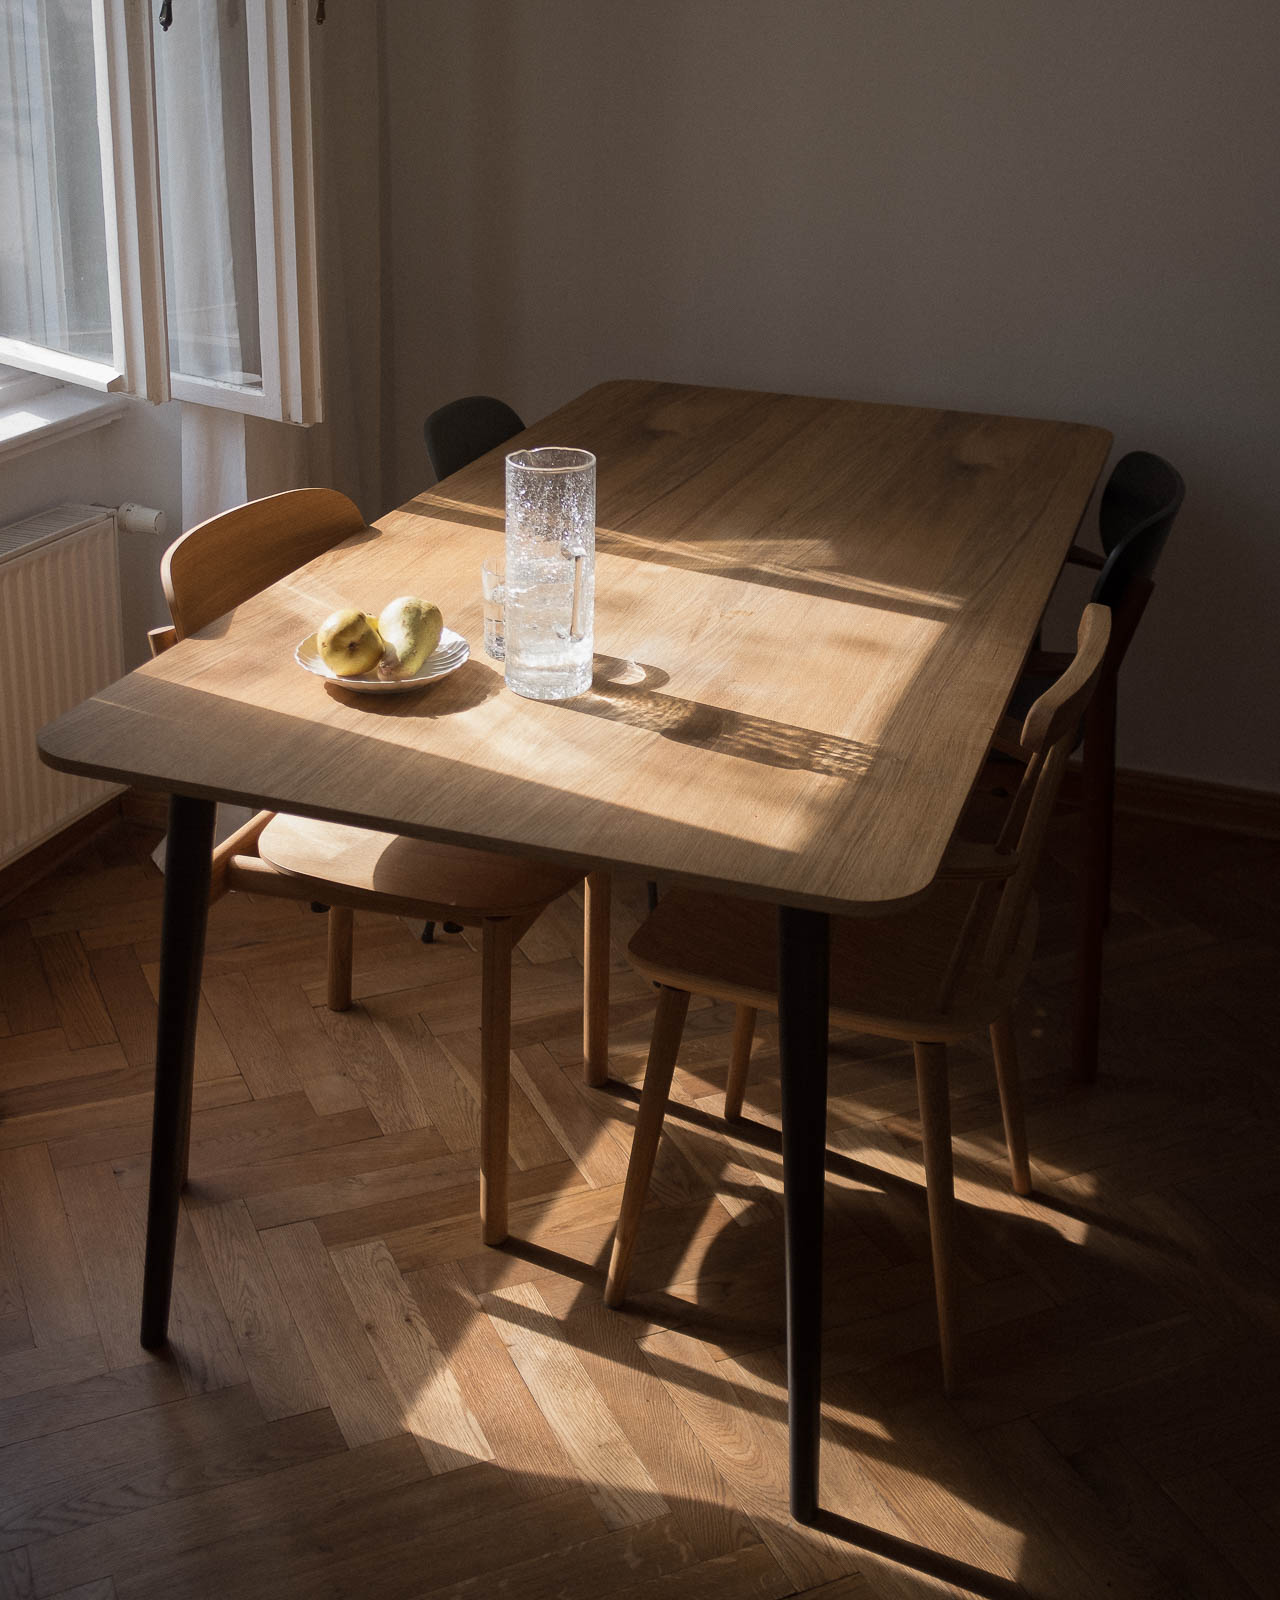 interior by stormwes with mycs chairs pryme, styng and chayr with nordyc table